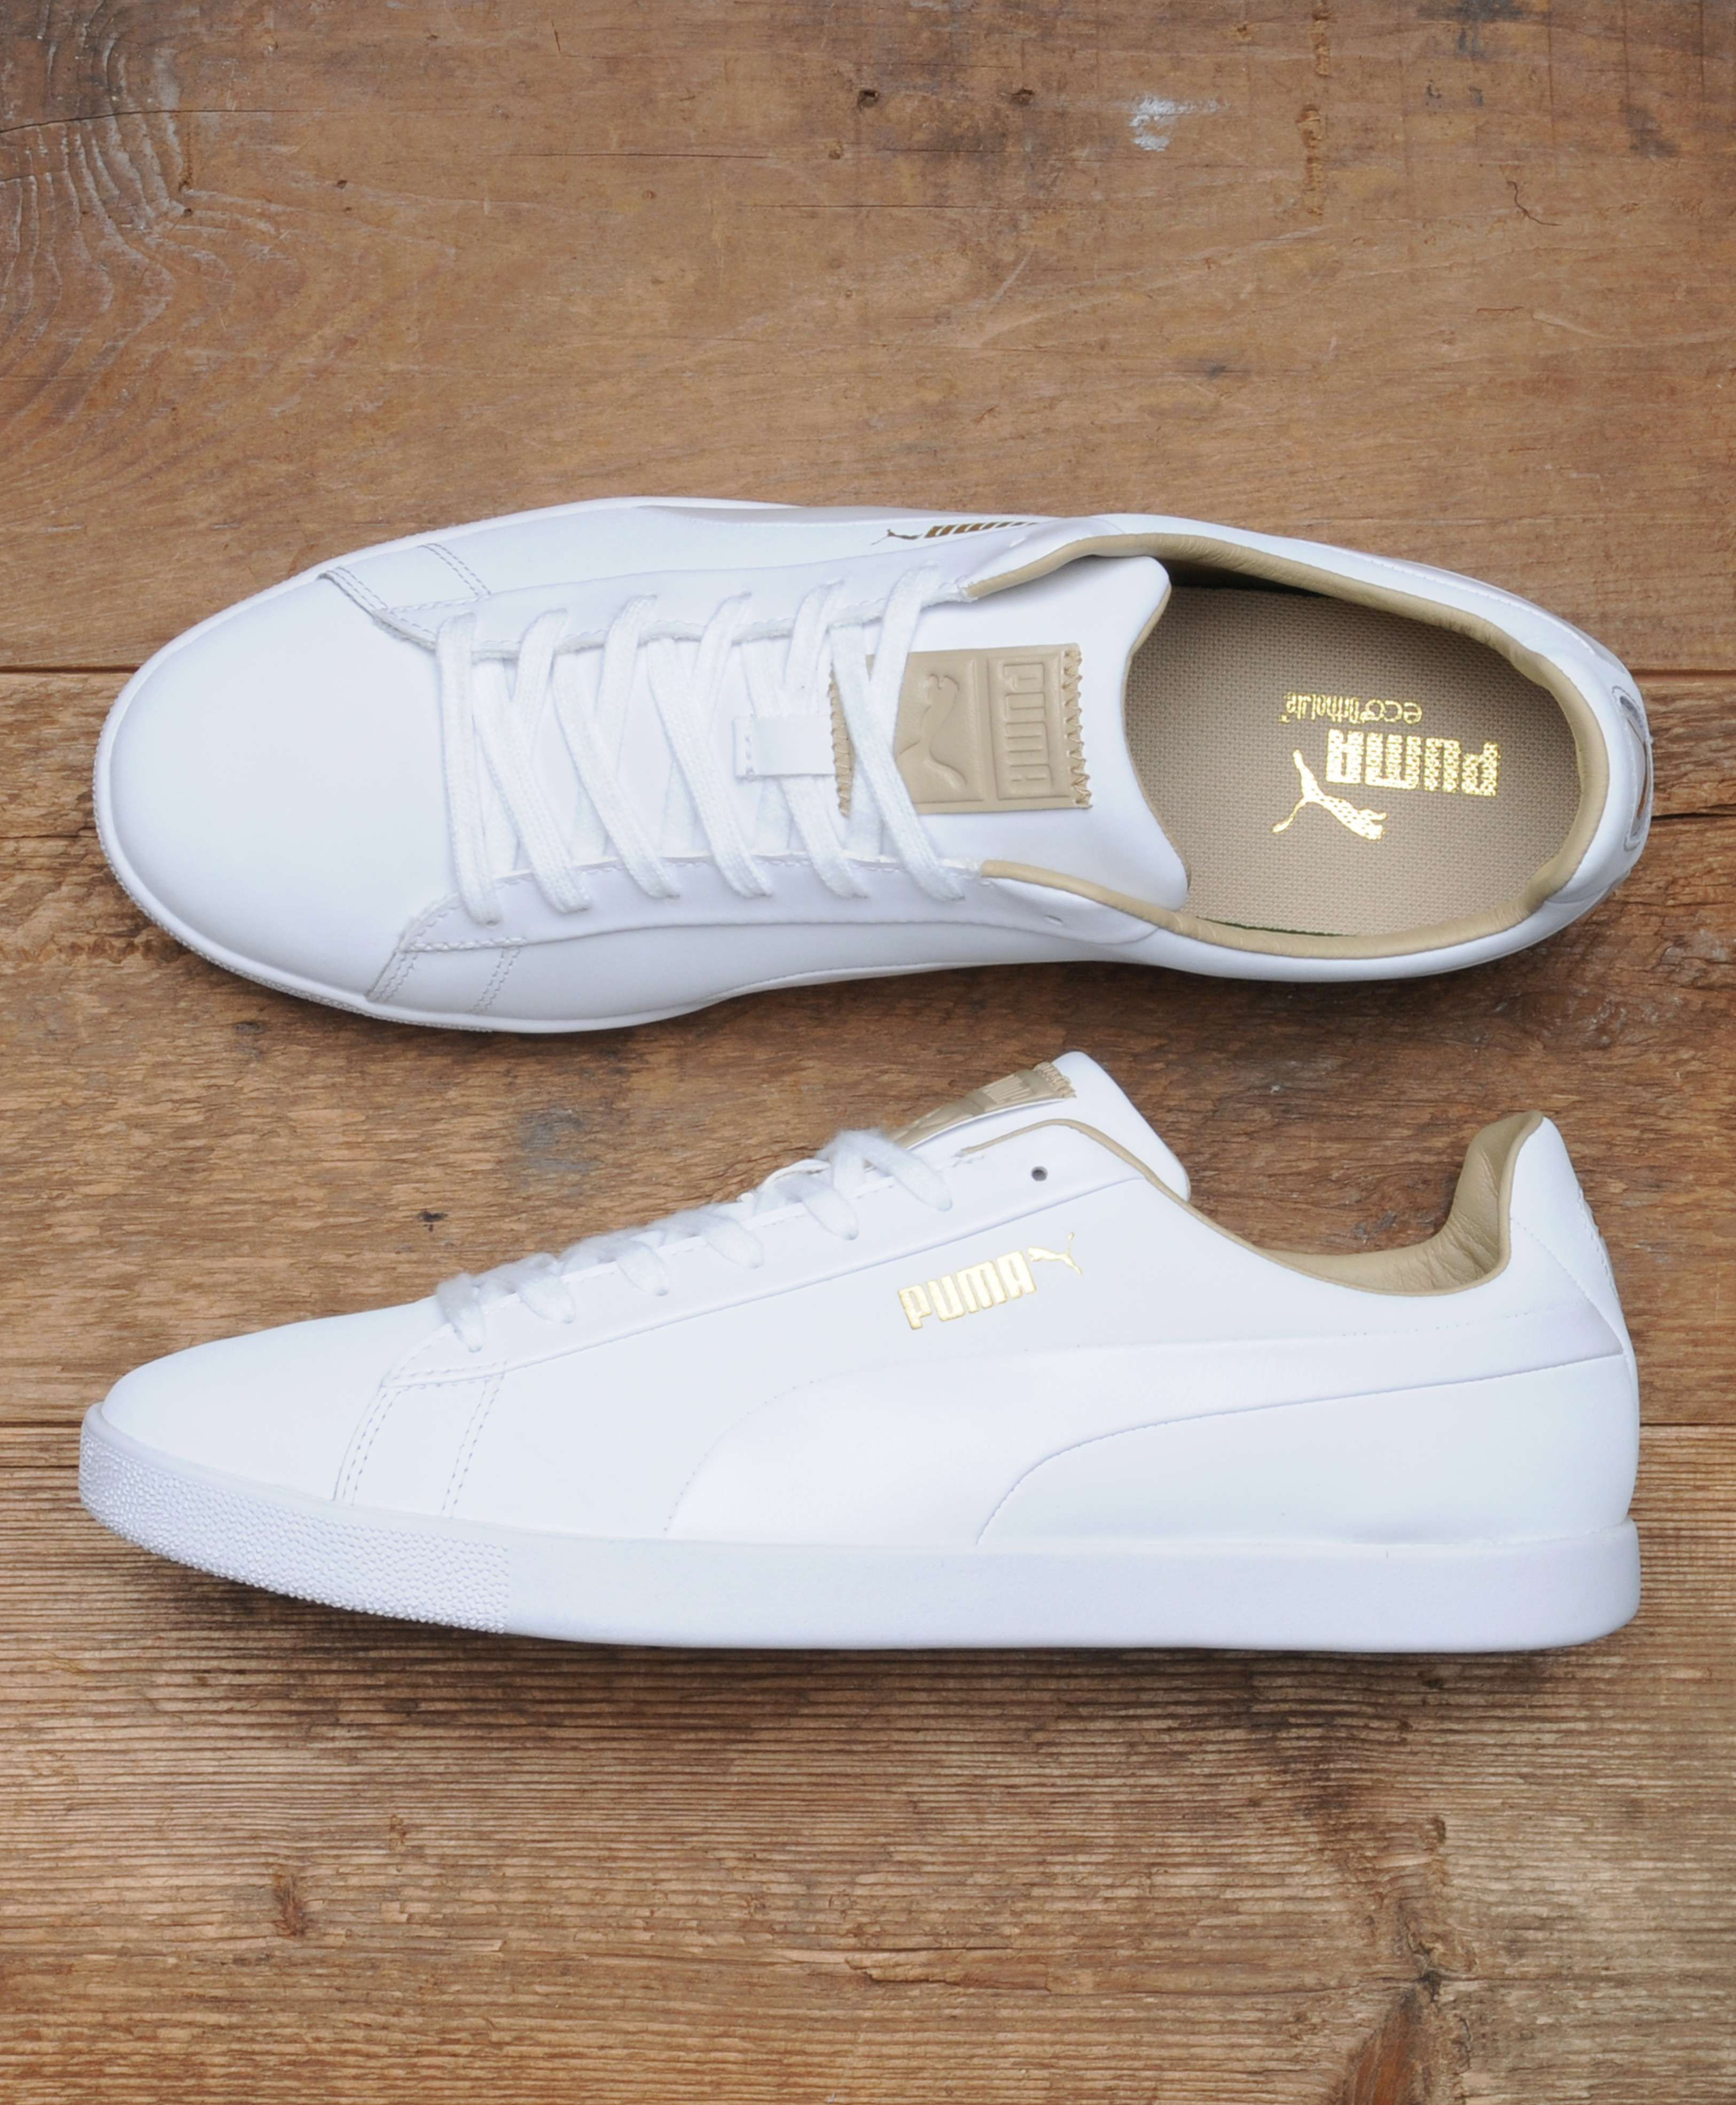 Puma Modern Court Exclusive | Puma shoes women, Sneakers